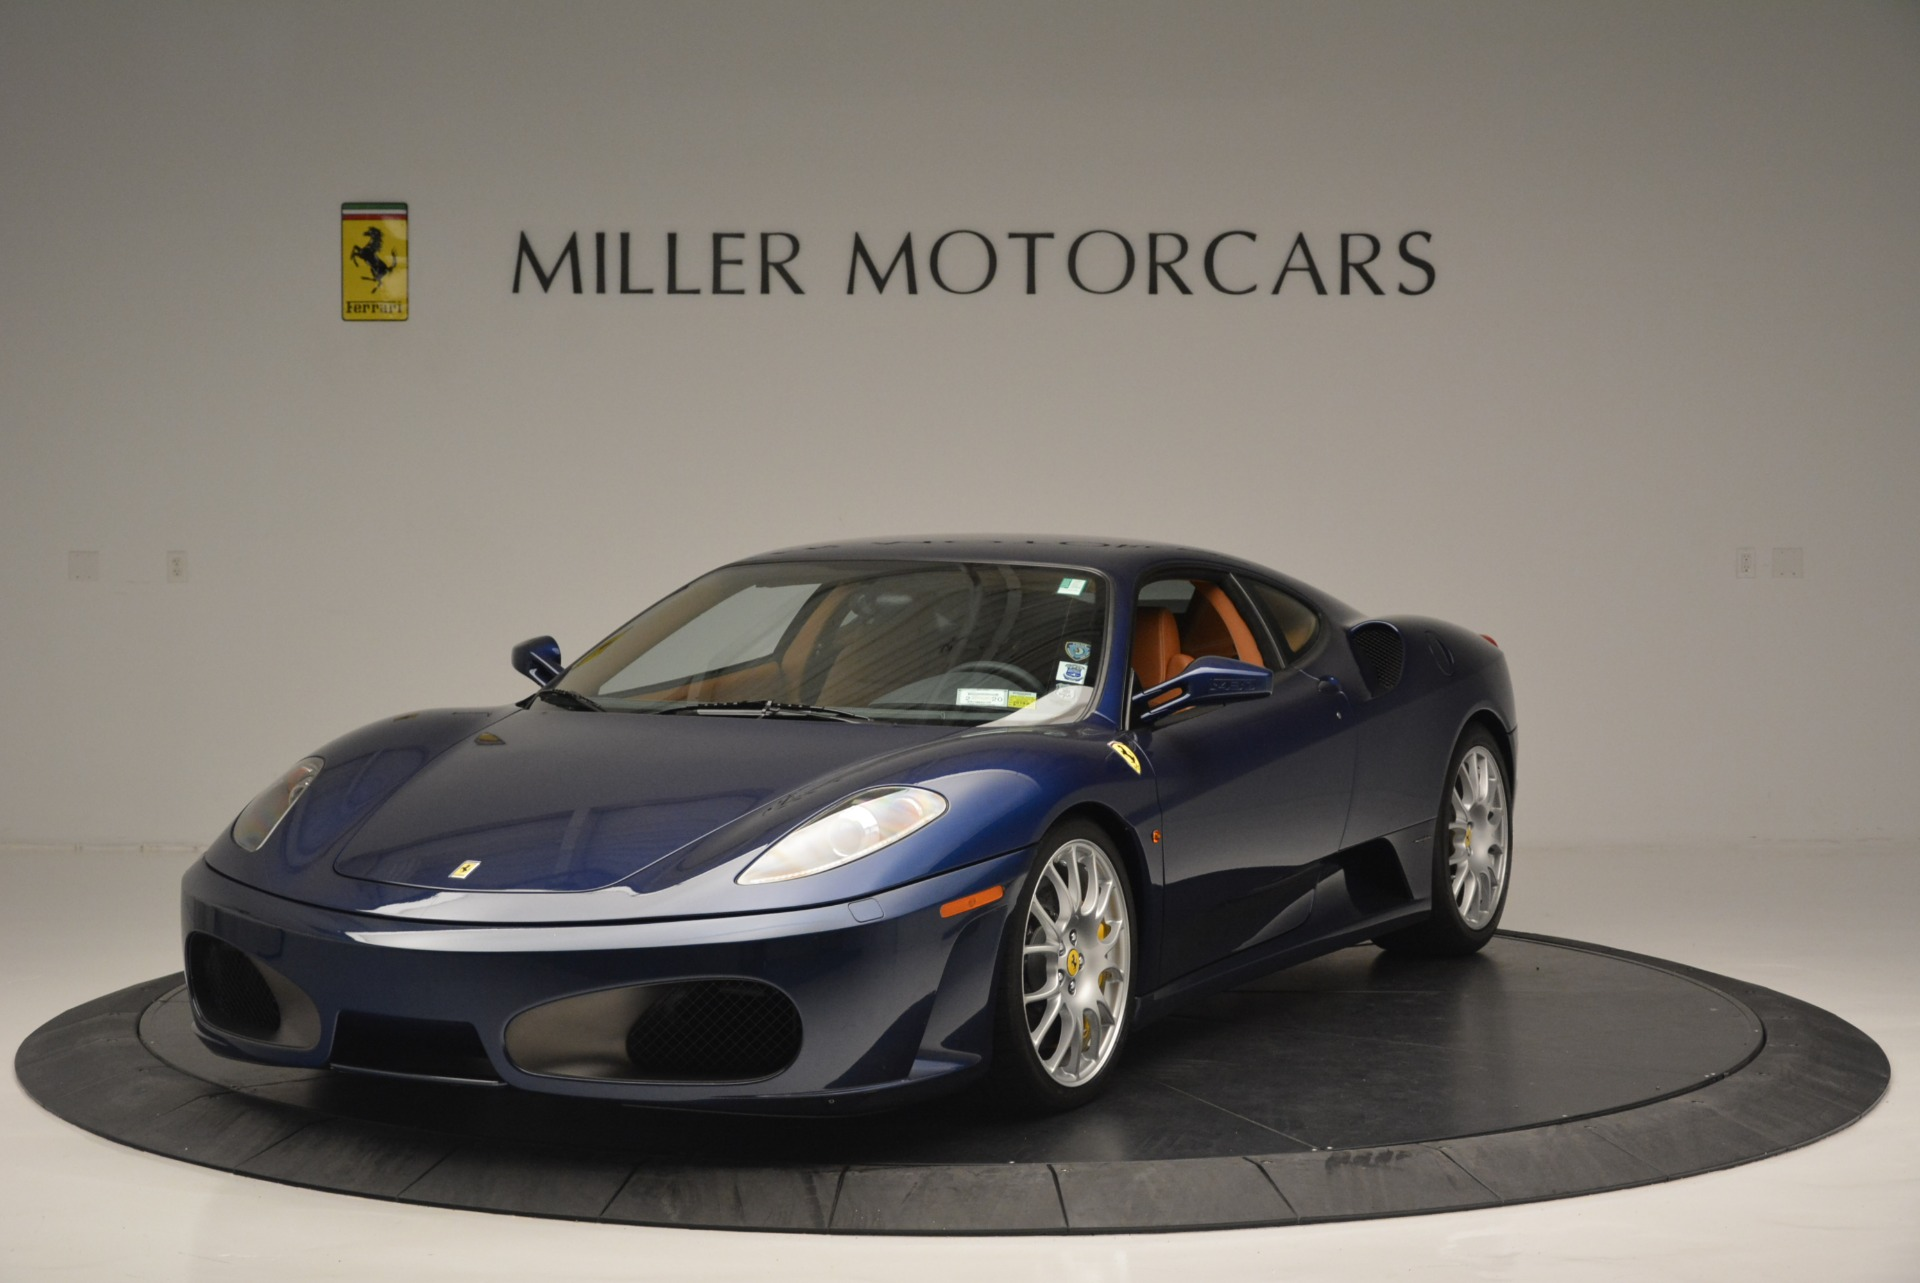 Used 2009 Ferrari F430 6-Speed Manual for sale Sold at McLaren Greenwich in Greenwich CT 06830 1